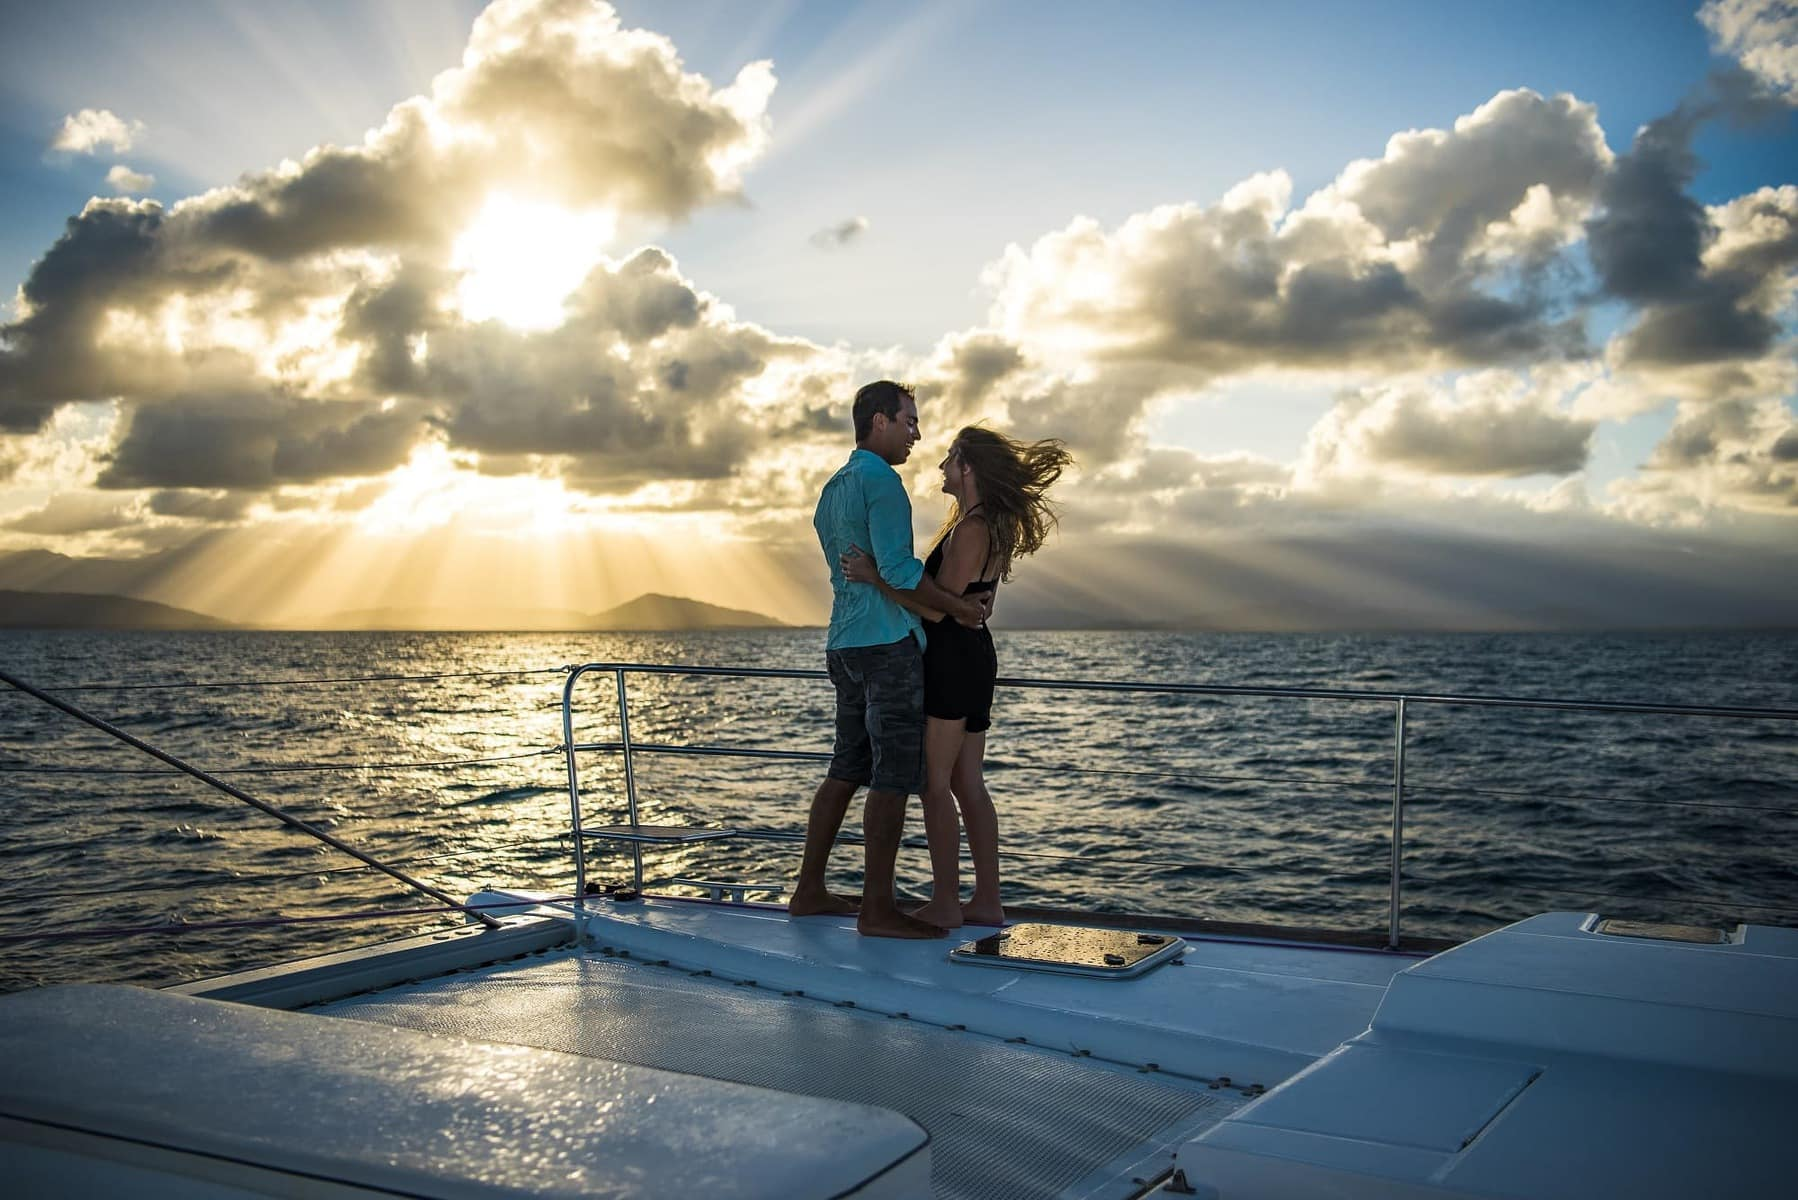 sunset cruise Port Douglas overlooking Coral Sea Daintree Rainforest romantic